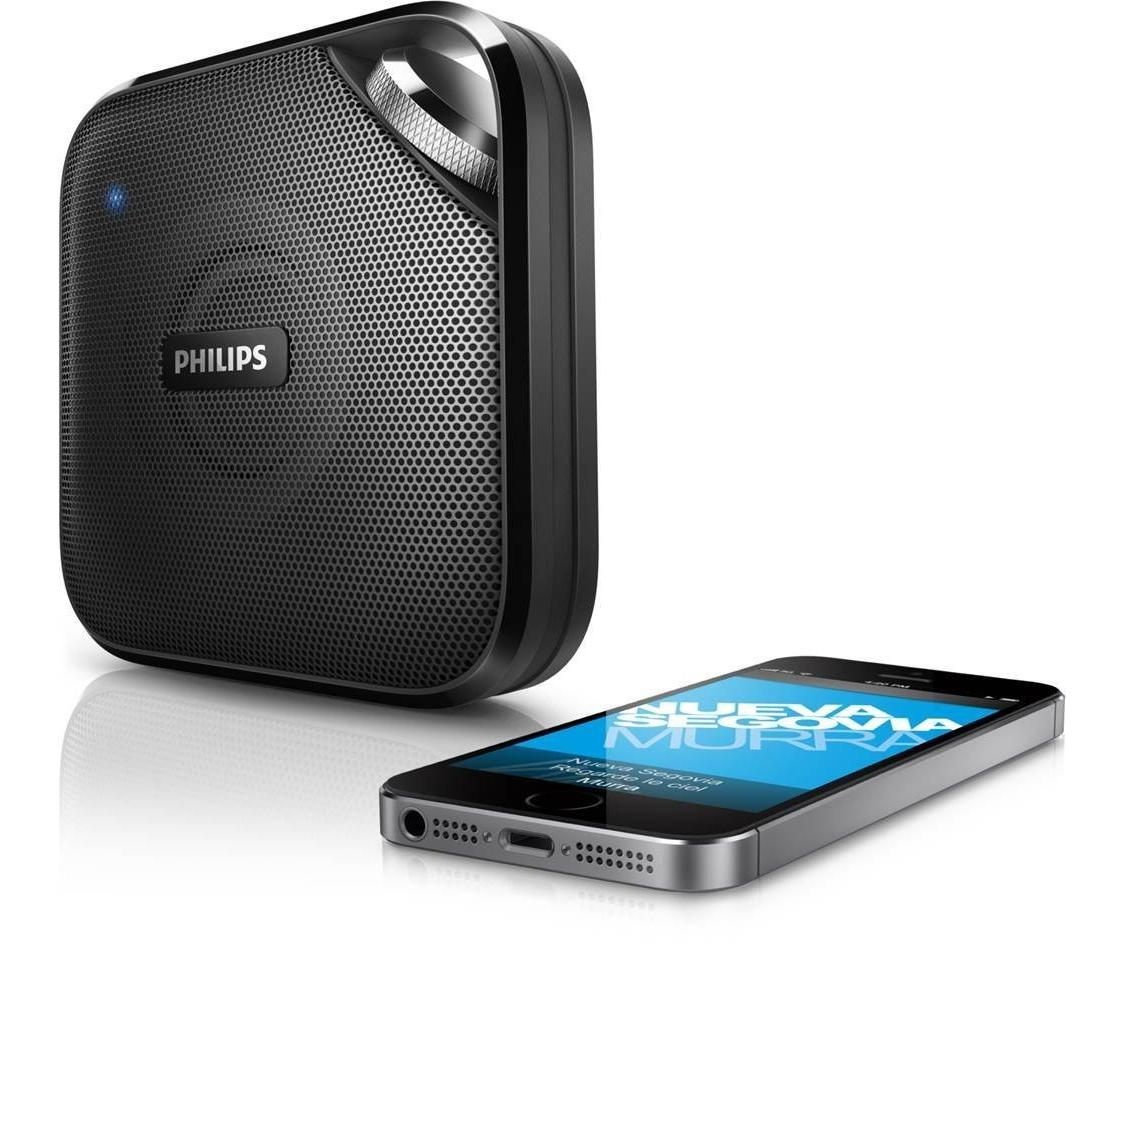 Mini-Enceinte Philips BT2500B